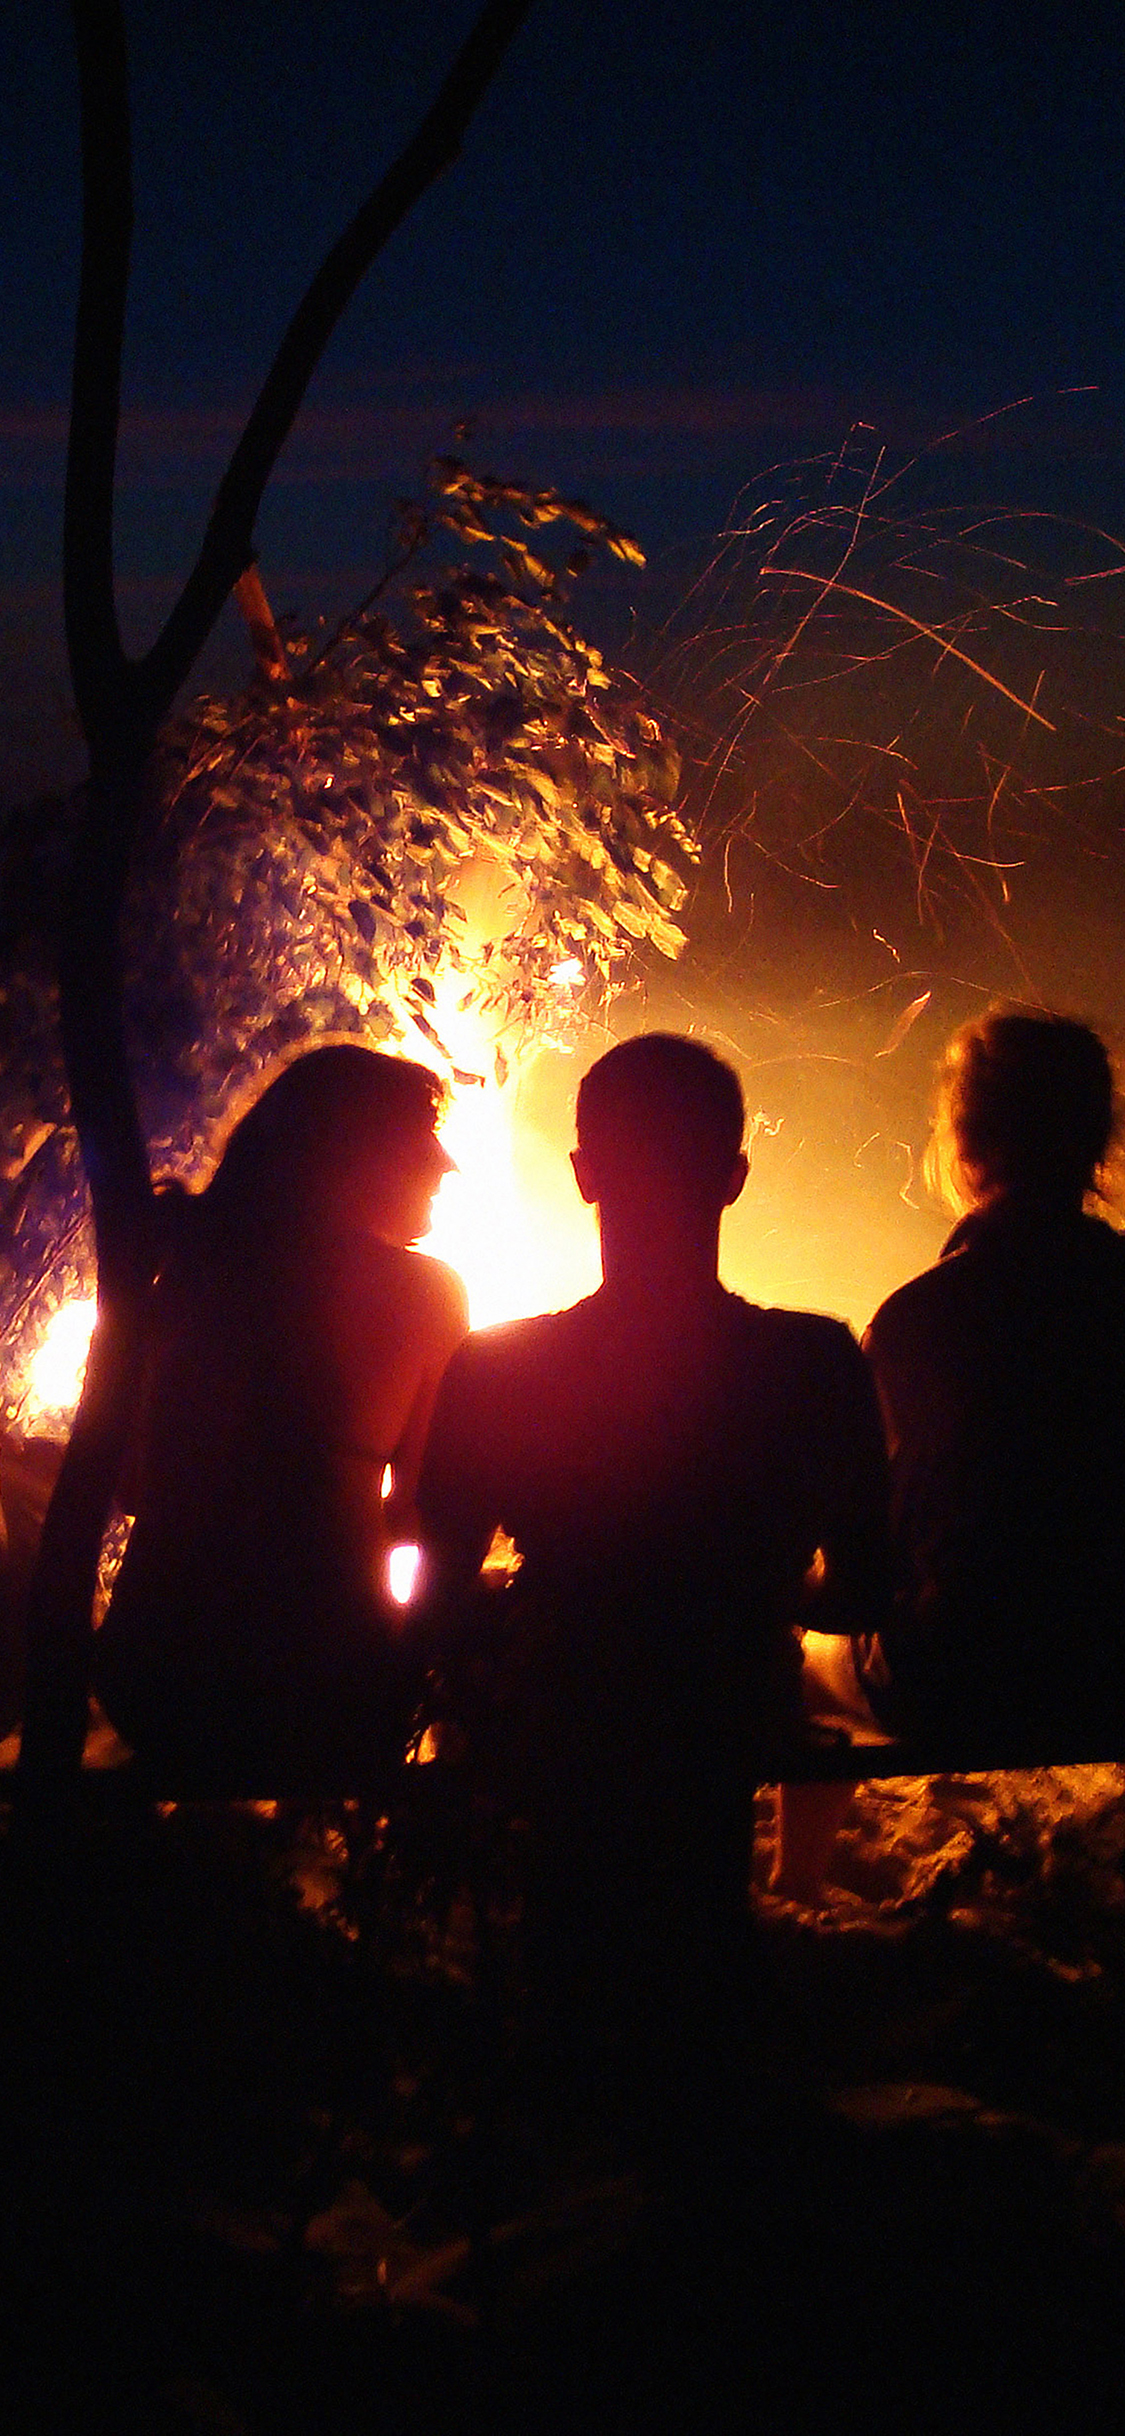 mc07-wallpaper-beach-bonfire-night-camp - Papers.co